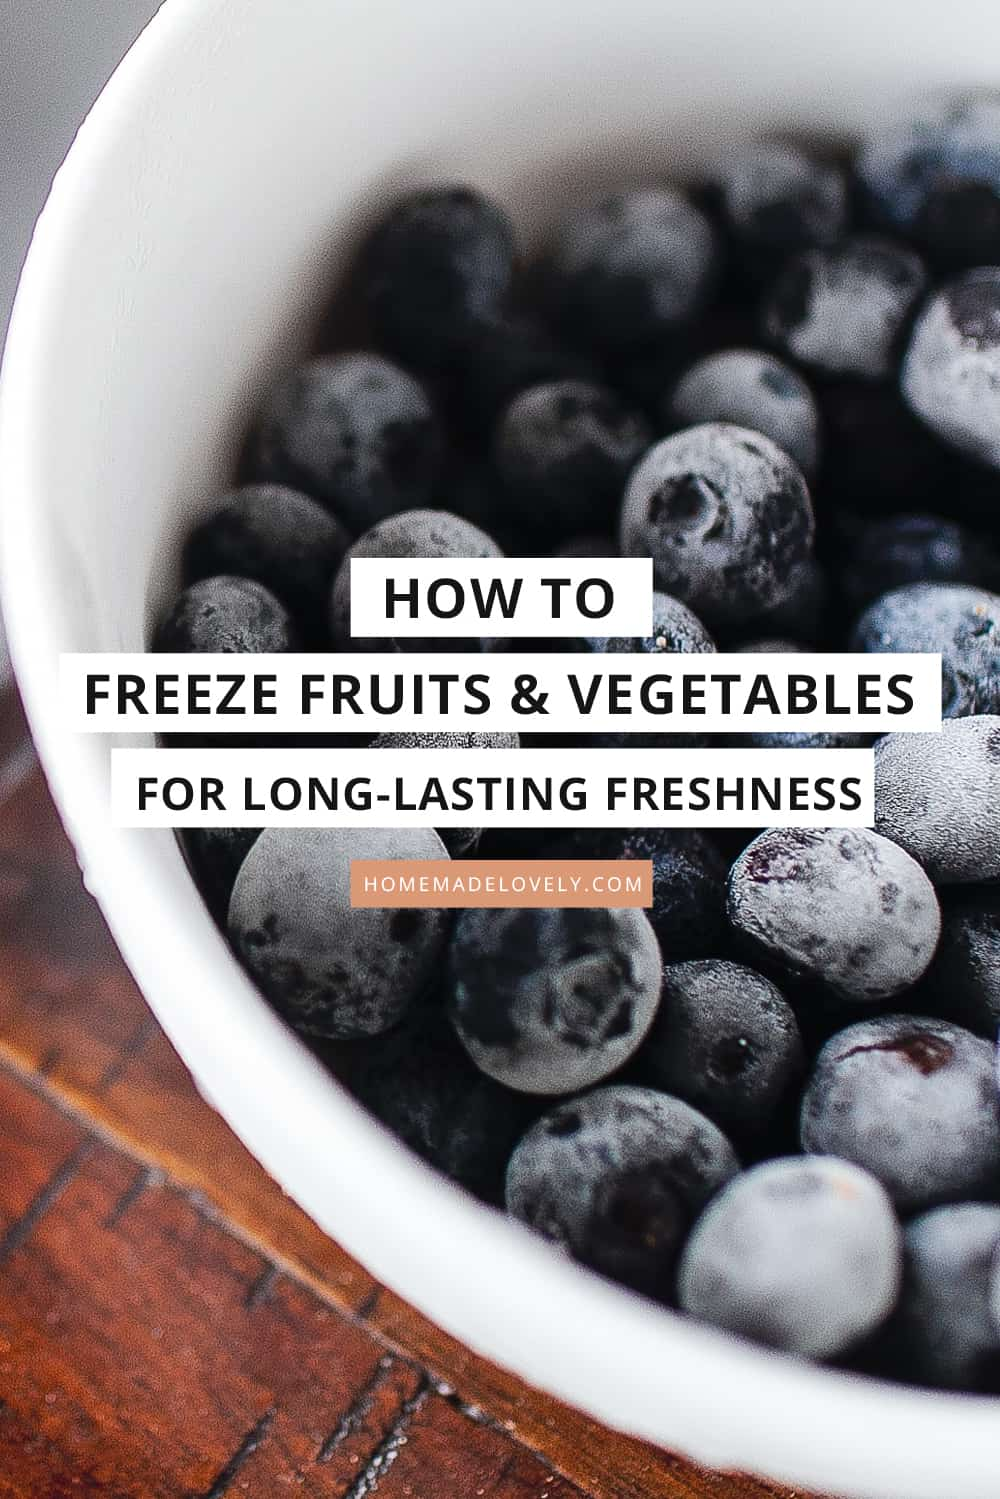 frozen blueberries in a white bowl with text overlay that says how to freeze fruits and vegetables for long-lasting freshness